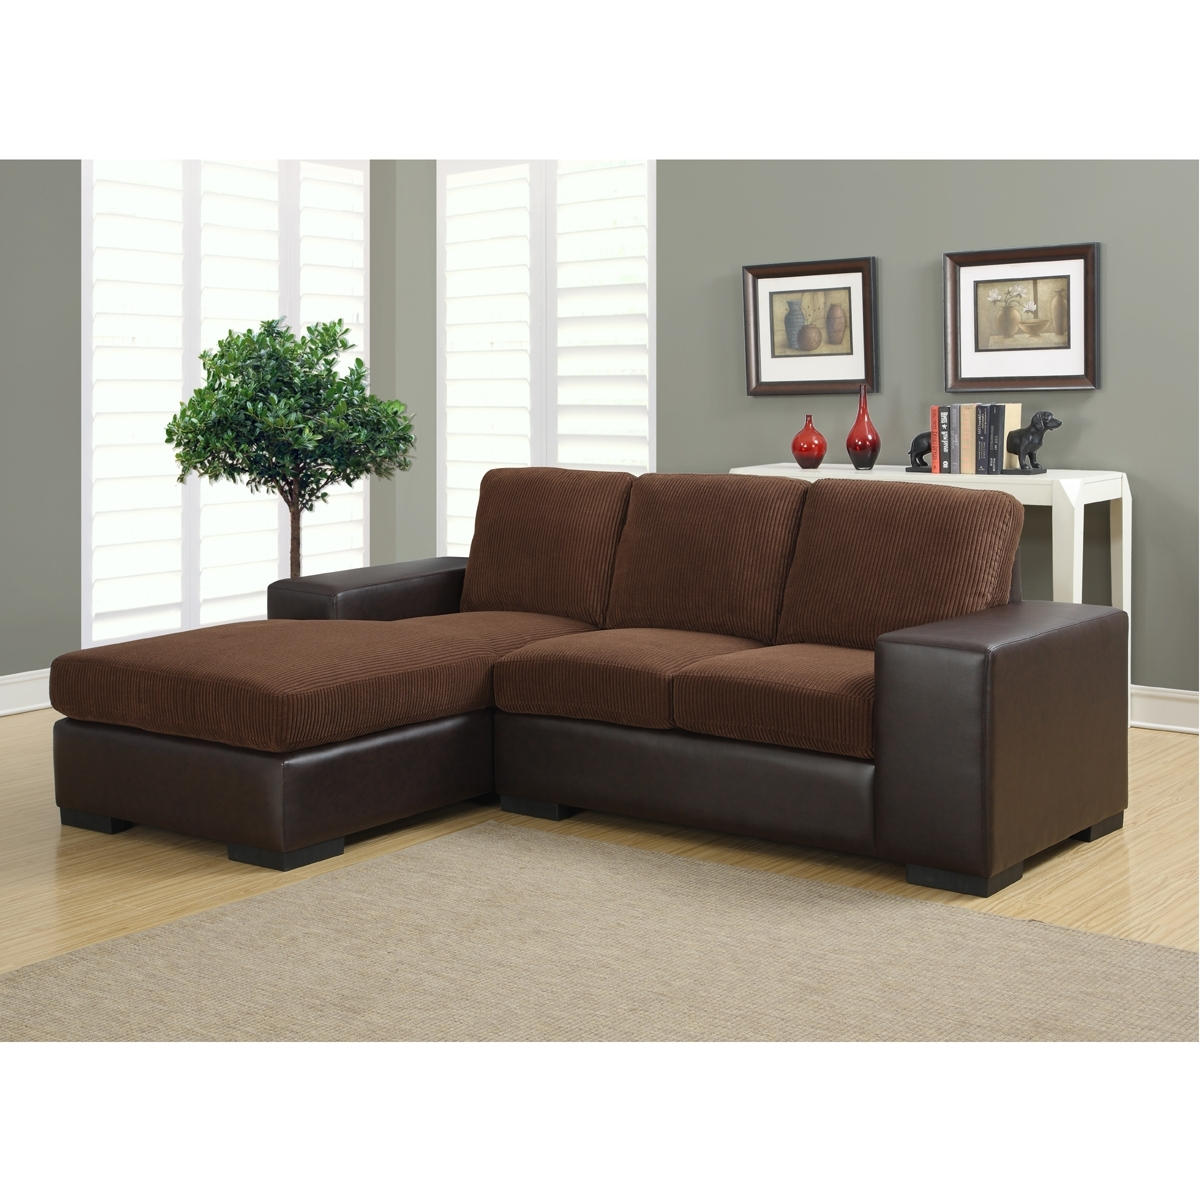 Modern Sectional Sofas In Brown Corduroy With Regard To Famous Sectional Sofas For Condos (View 8 of 20)